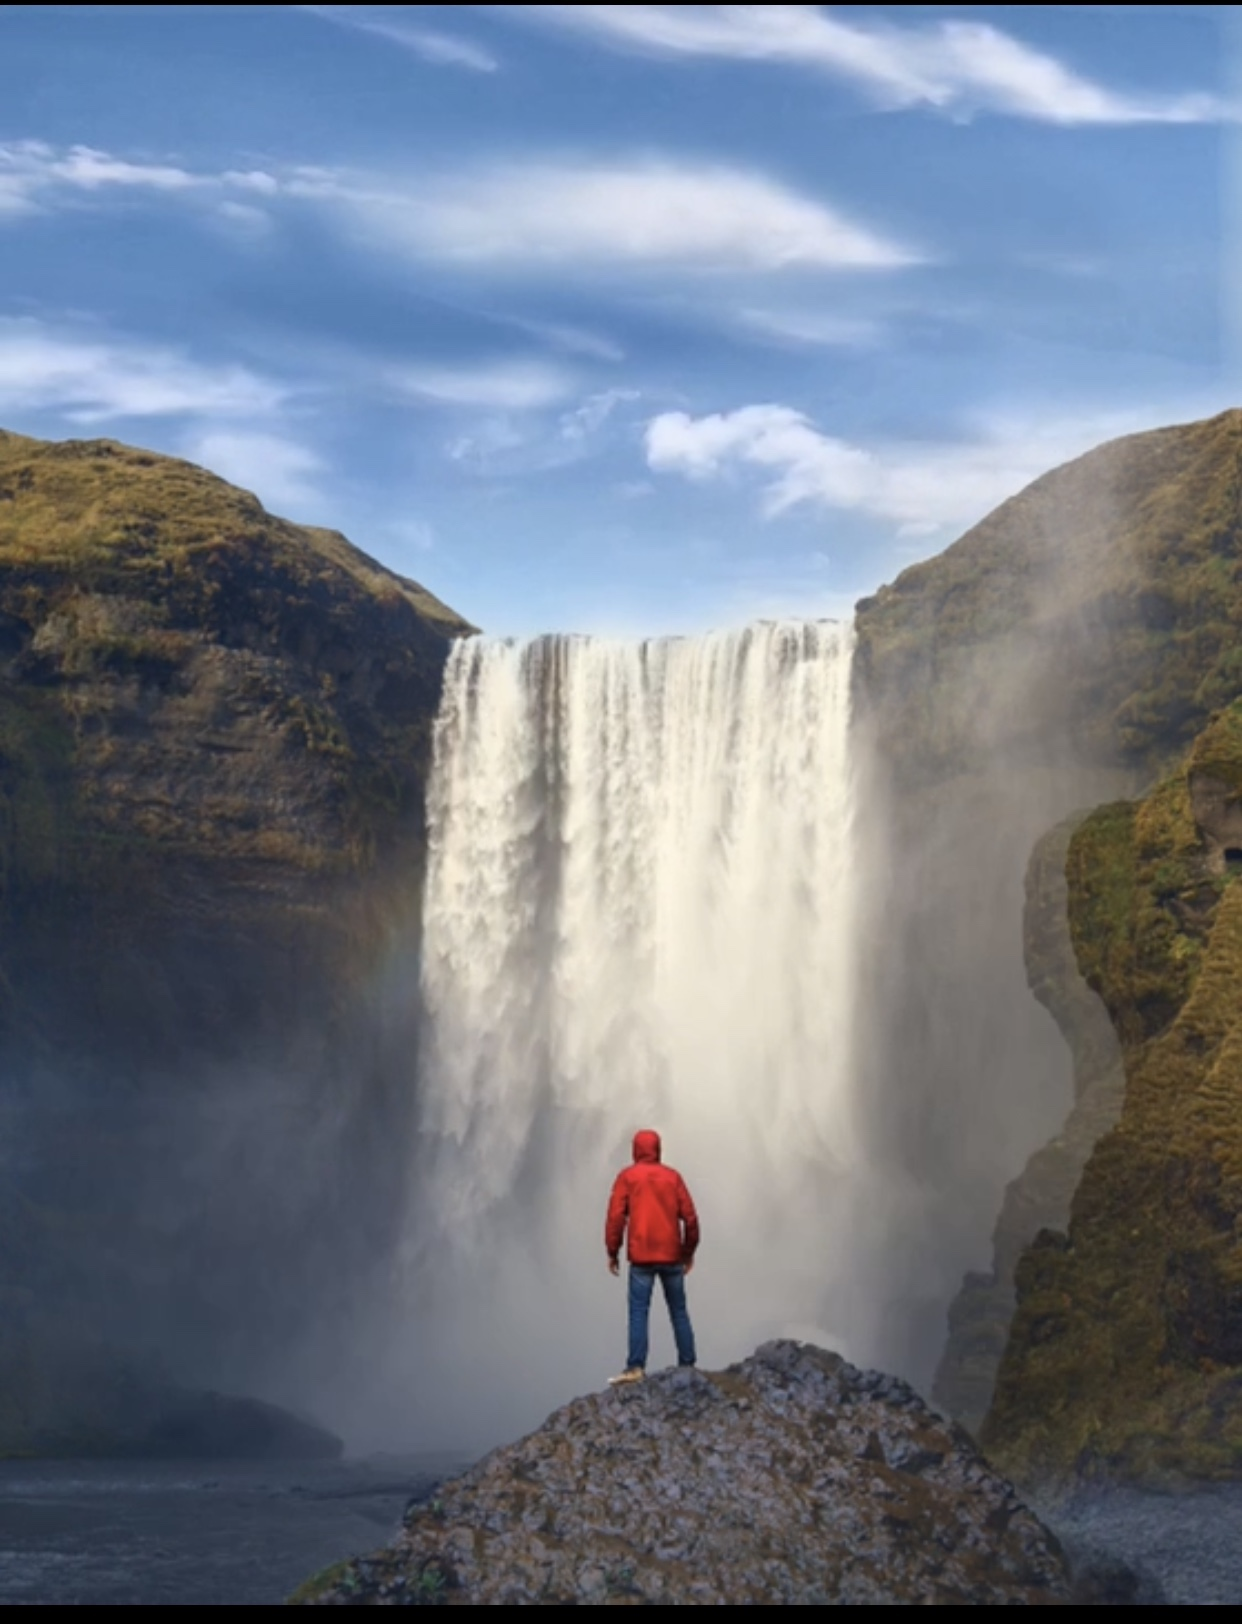 Photo of the author standing in front of a waterfall in a red rain jacket. Photo courtesy of the author.